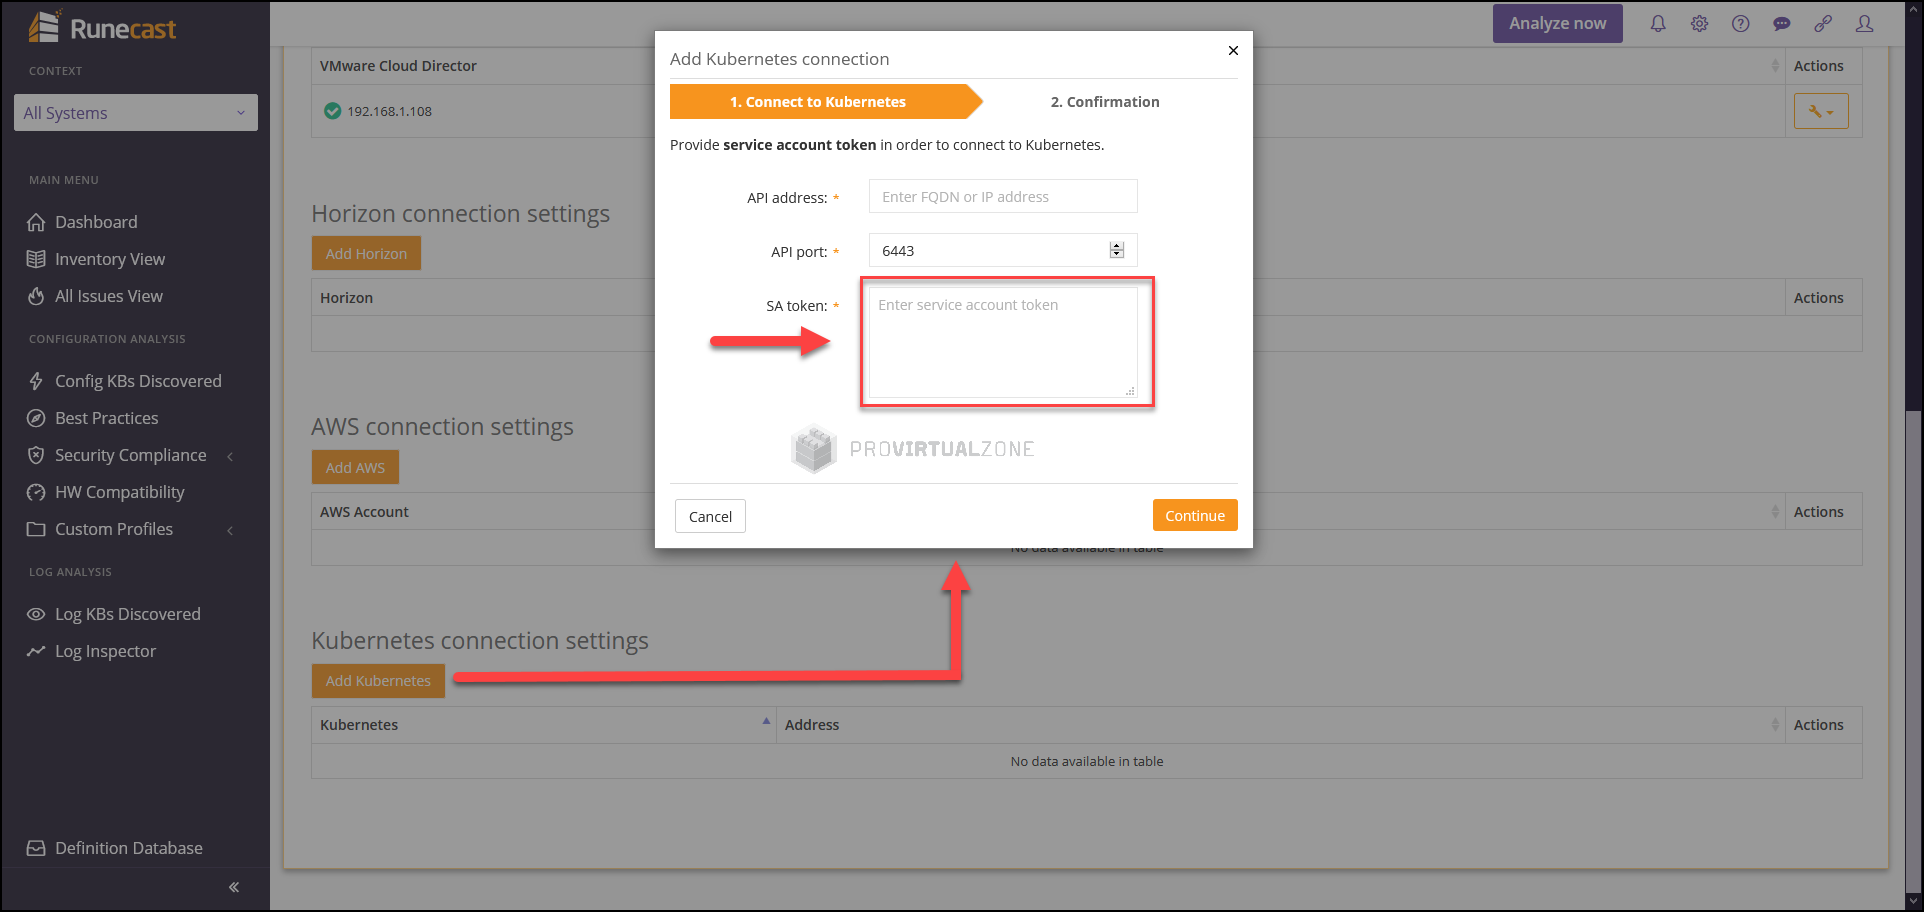 Runecast Analyzer v4.7.4 for NSX-T, Kubernetes, and vCloud Director review